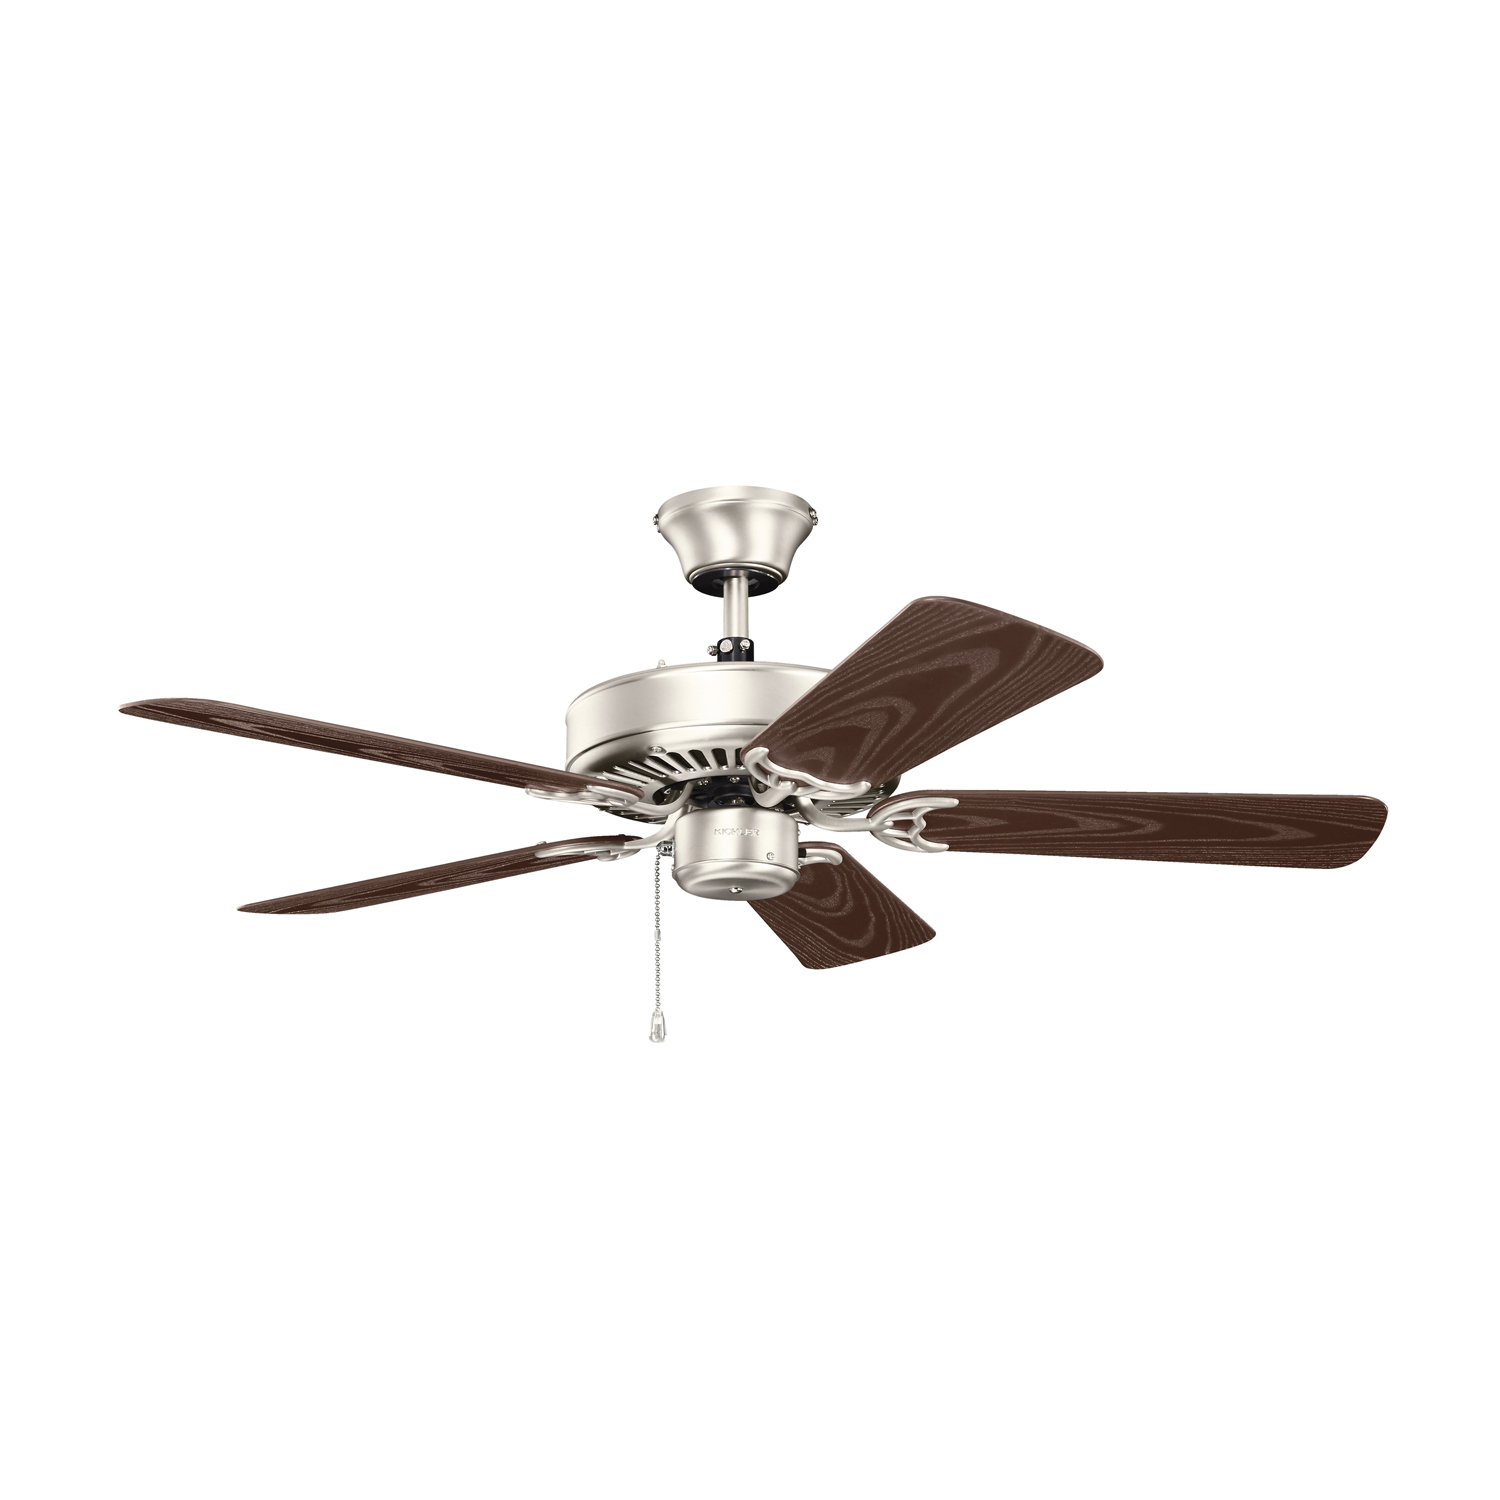 42 inchCeiling Fan from the Basics collection by Kichler 414NI